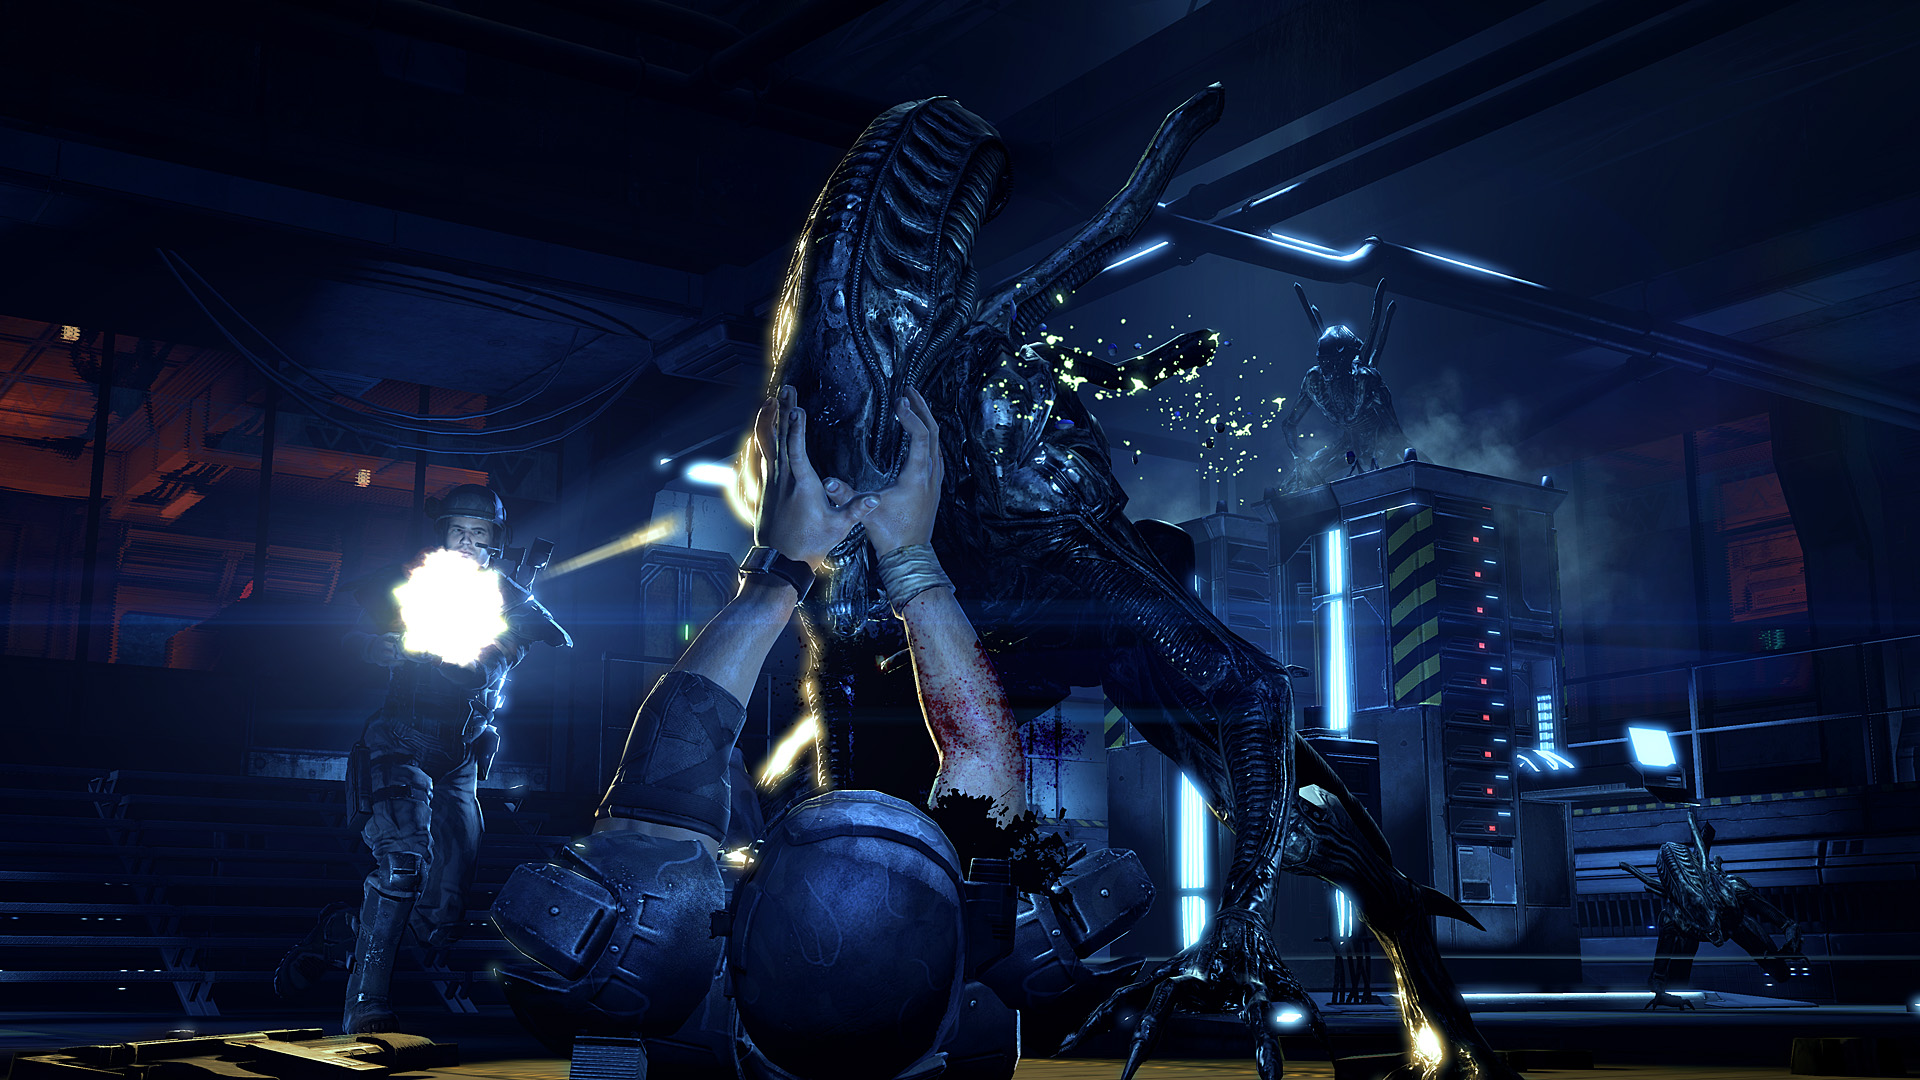 'Aliens: Colonial Marines' has biggest launch of 2013 in UK